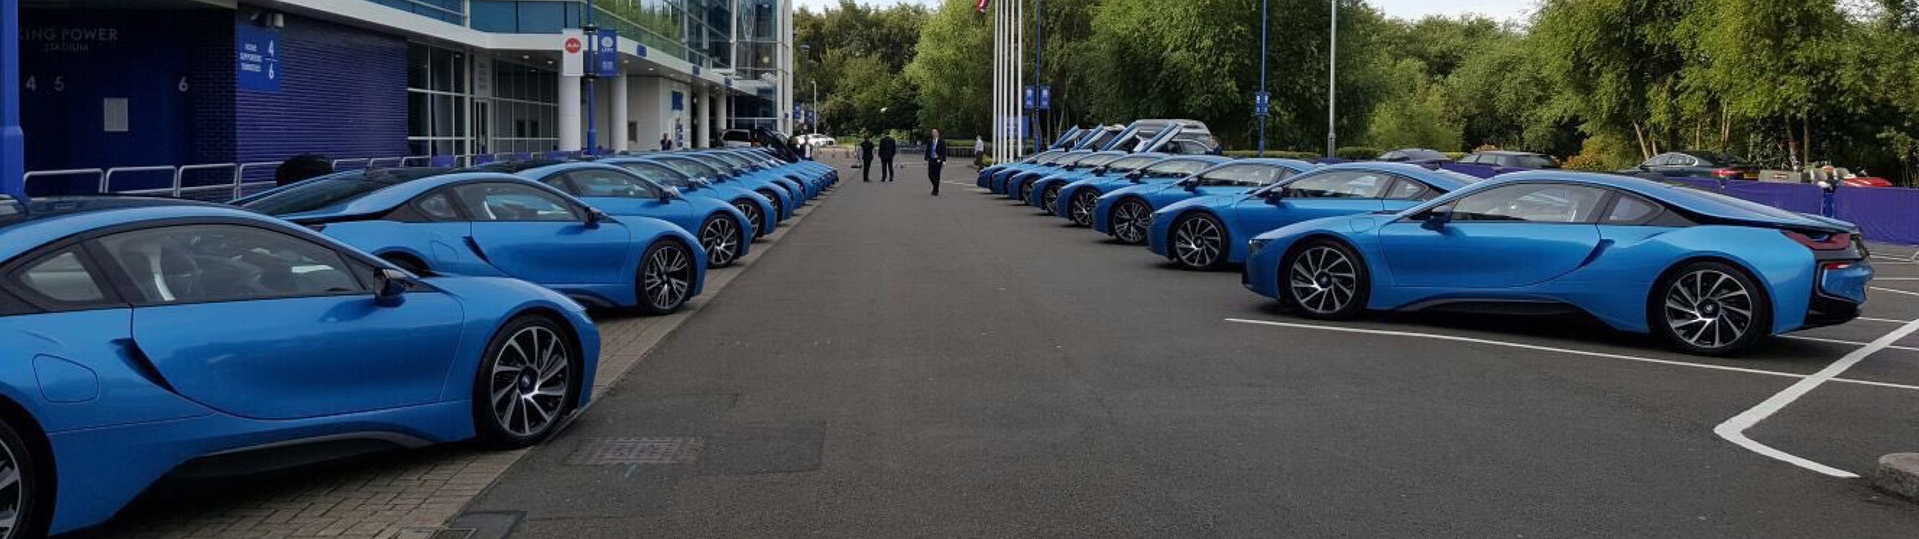 To celebrate their Premier League championship win, the players of Leicester City were gifted a fleet of BMW i8s that were delivered in Leicester City Blue to match the team's colors. While a BMW i8 is an amazing gift, many of the players are having trouble telling the vehicles apart and this has been leading to some confusion.